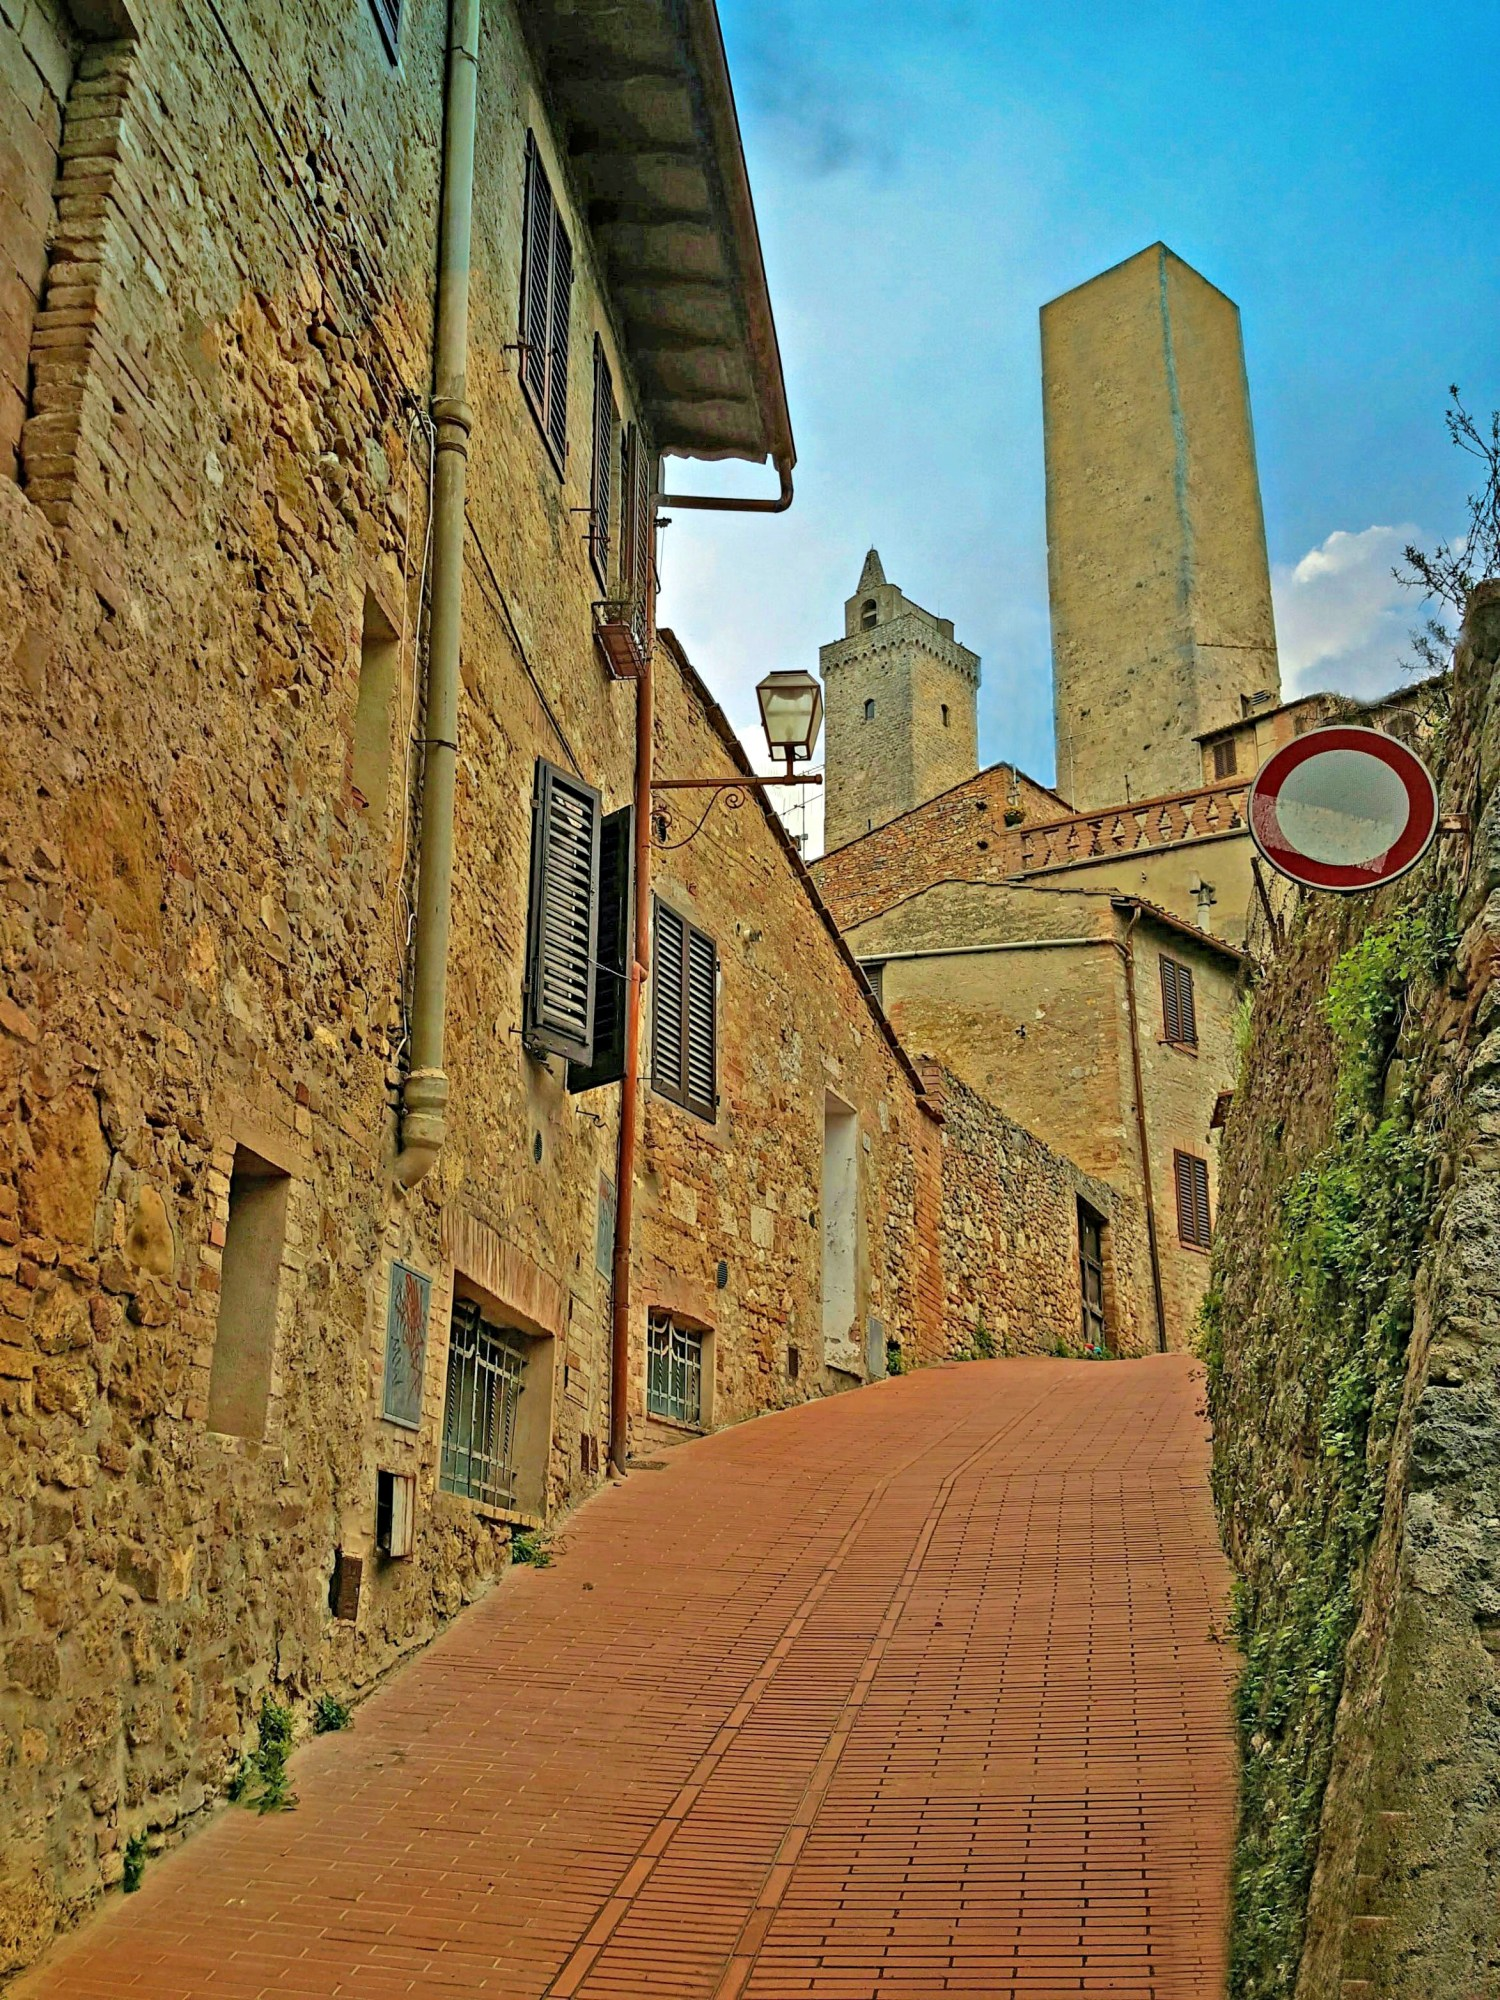 San Gimignano in the Chianti region of Tuscany.